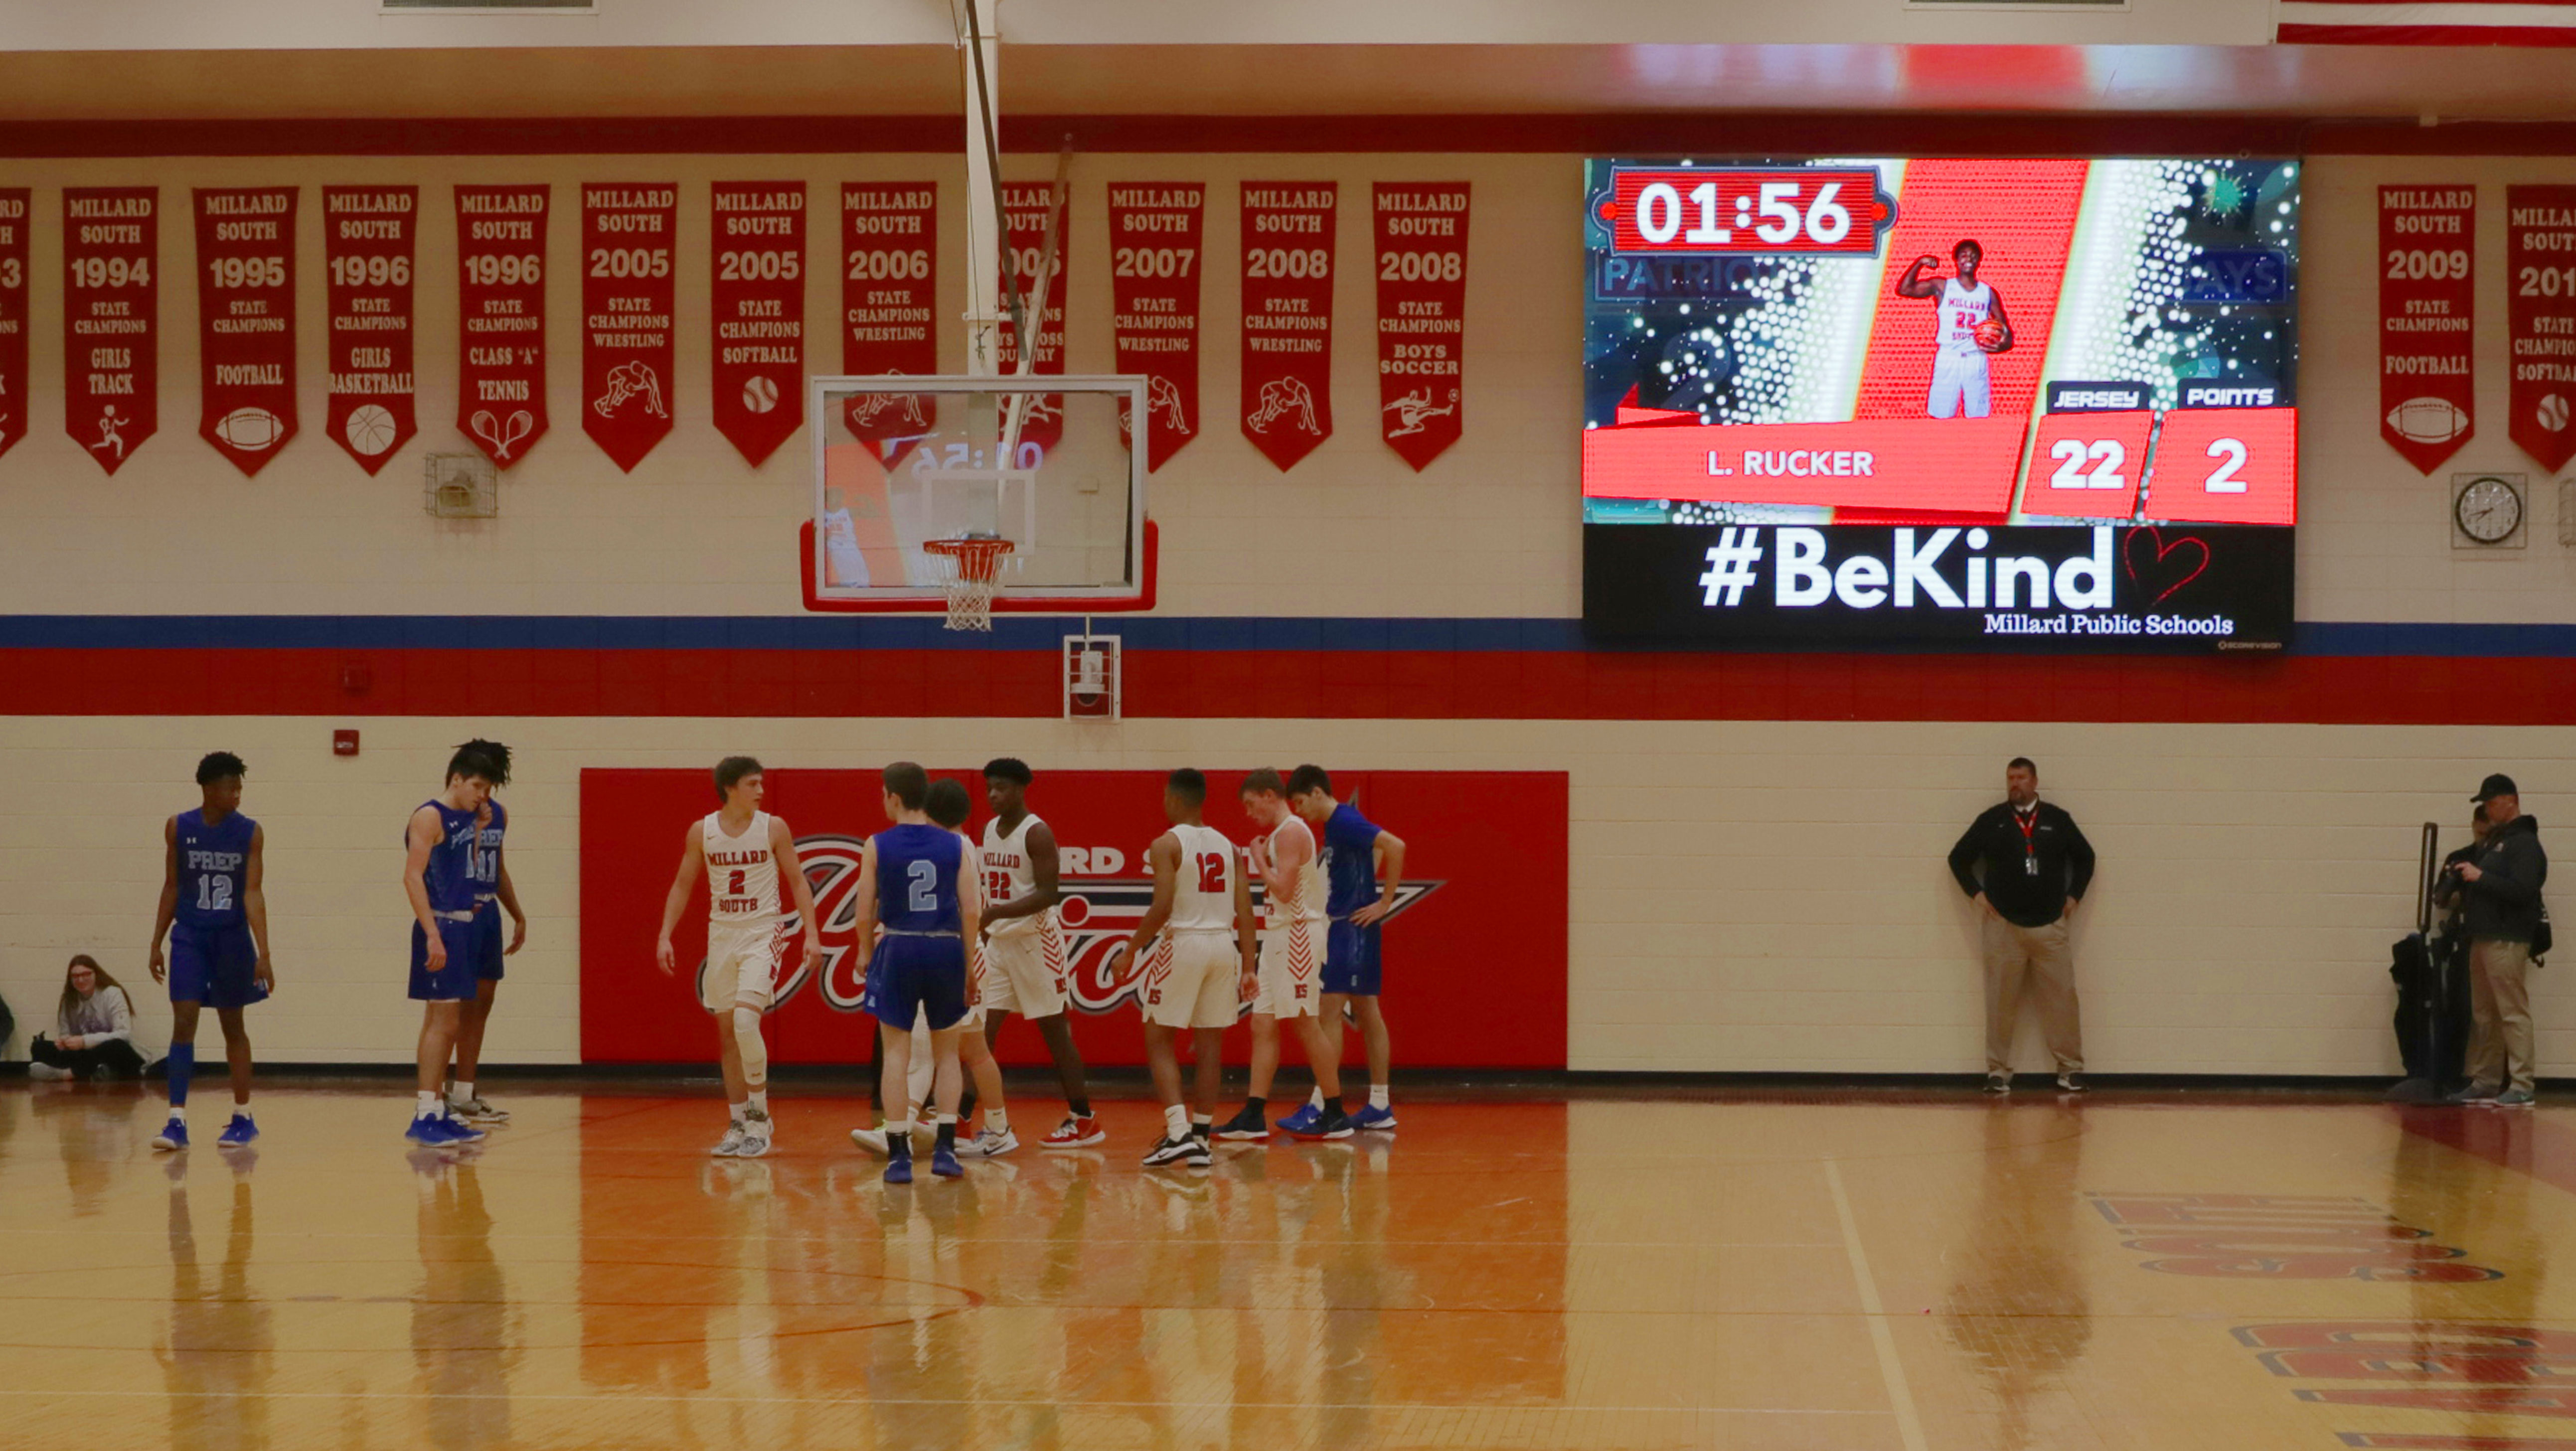 Millard-South-1410-Basketball-Video-Scoreboard-with-Player-Accolade